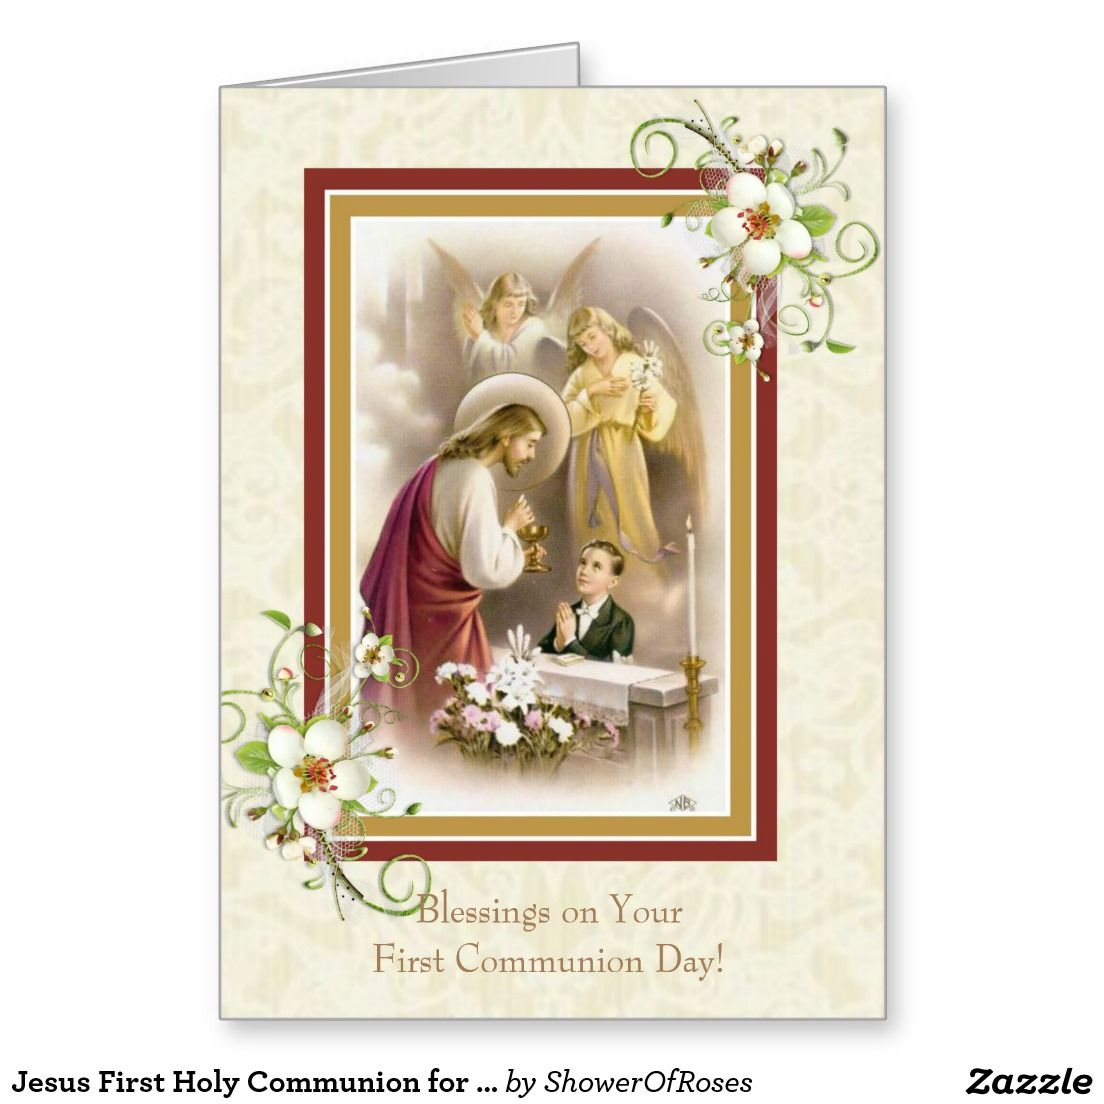 Jesus first holy communion for boy wangels greeting card shower jesus first holy communion for boy wangels greeting card kristyandbryce Choice Image